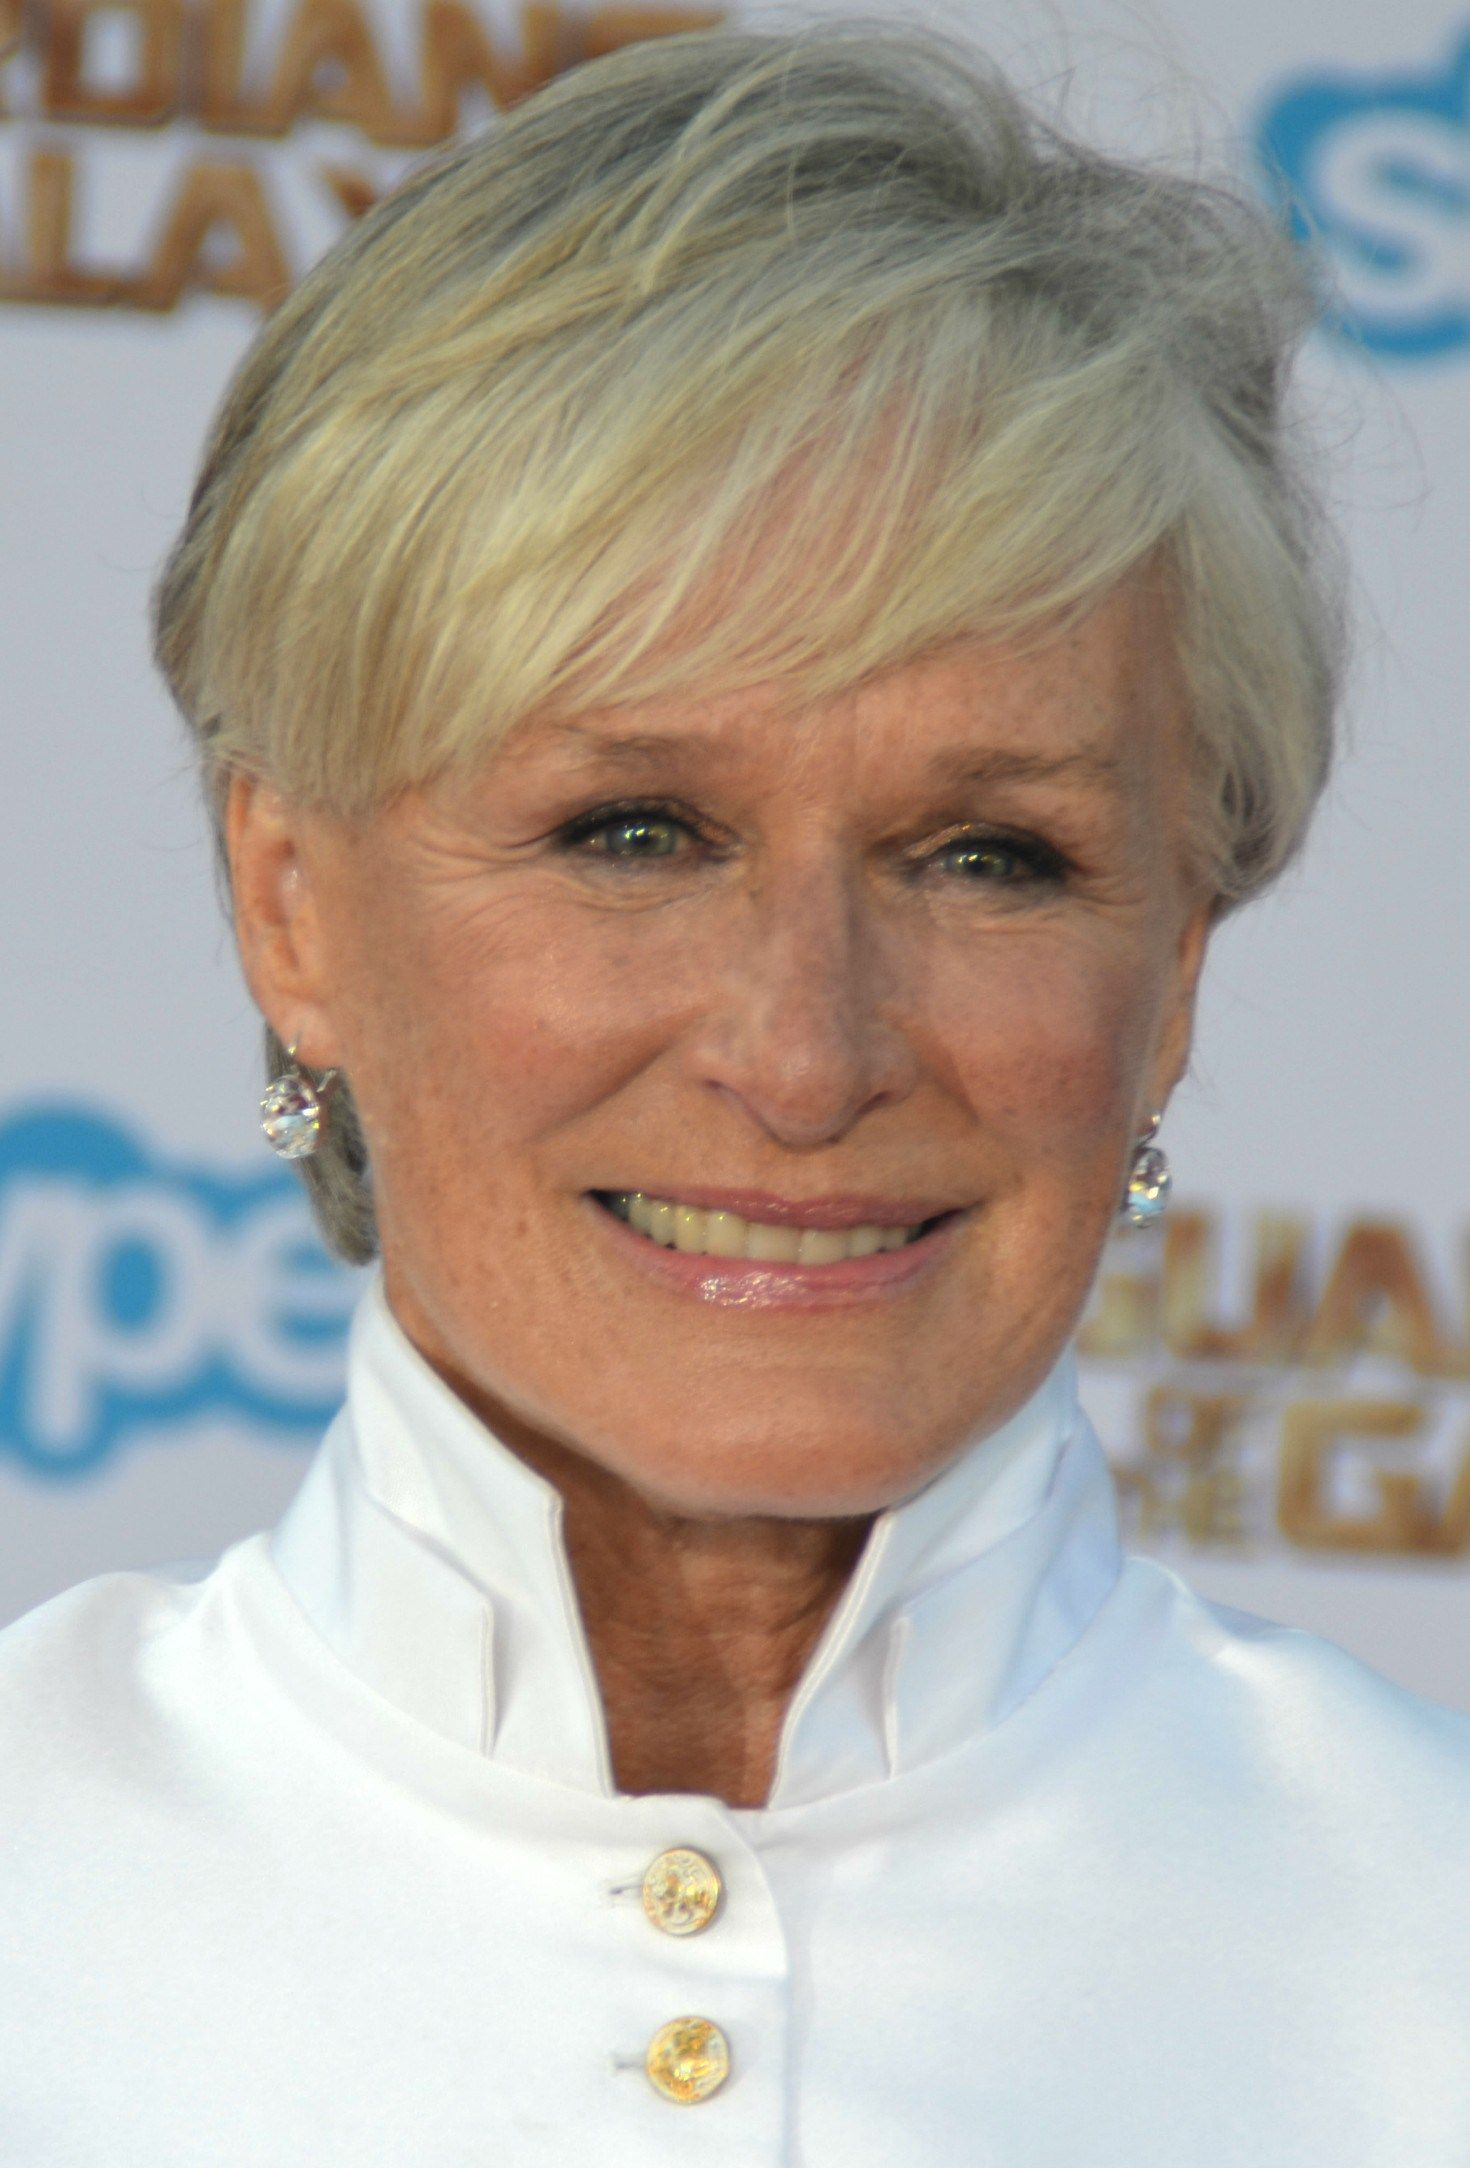 90 classy and simple short hairstyles for women over 50 | glenn